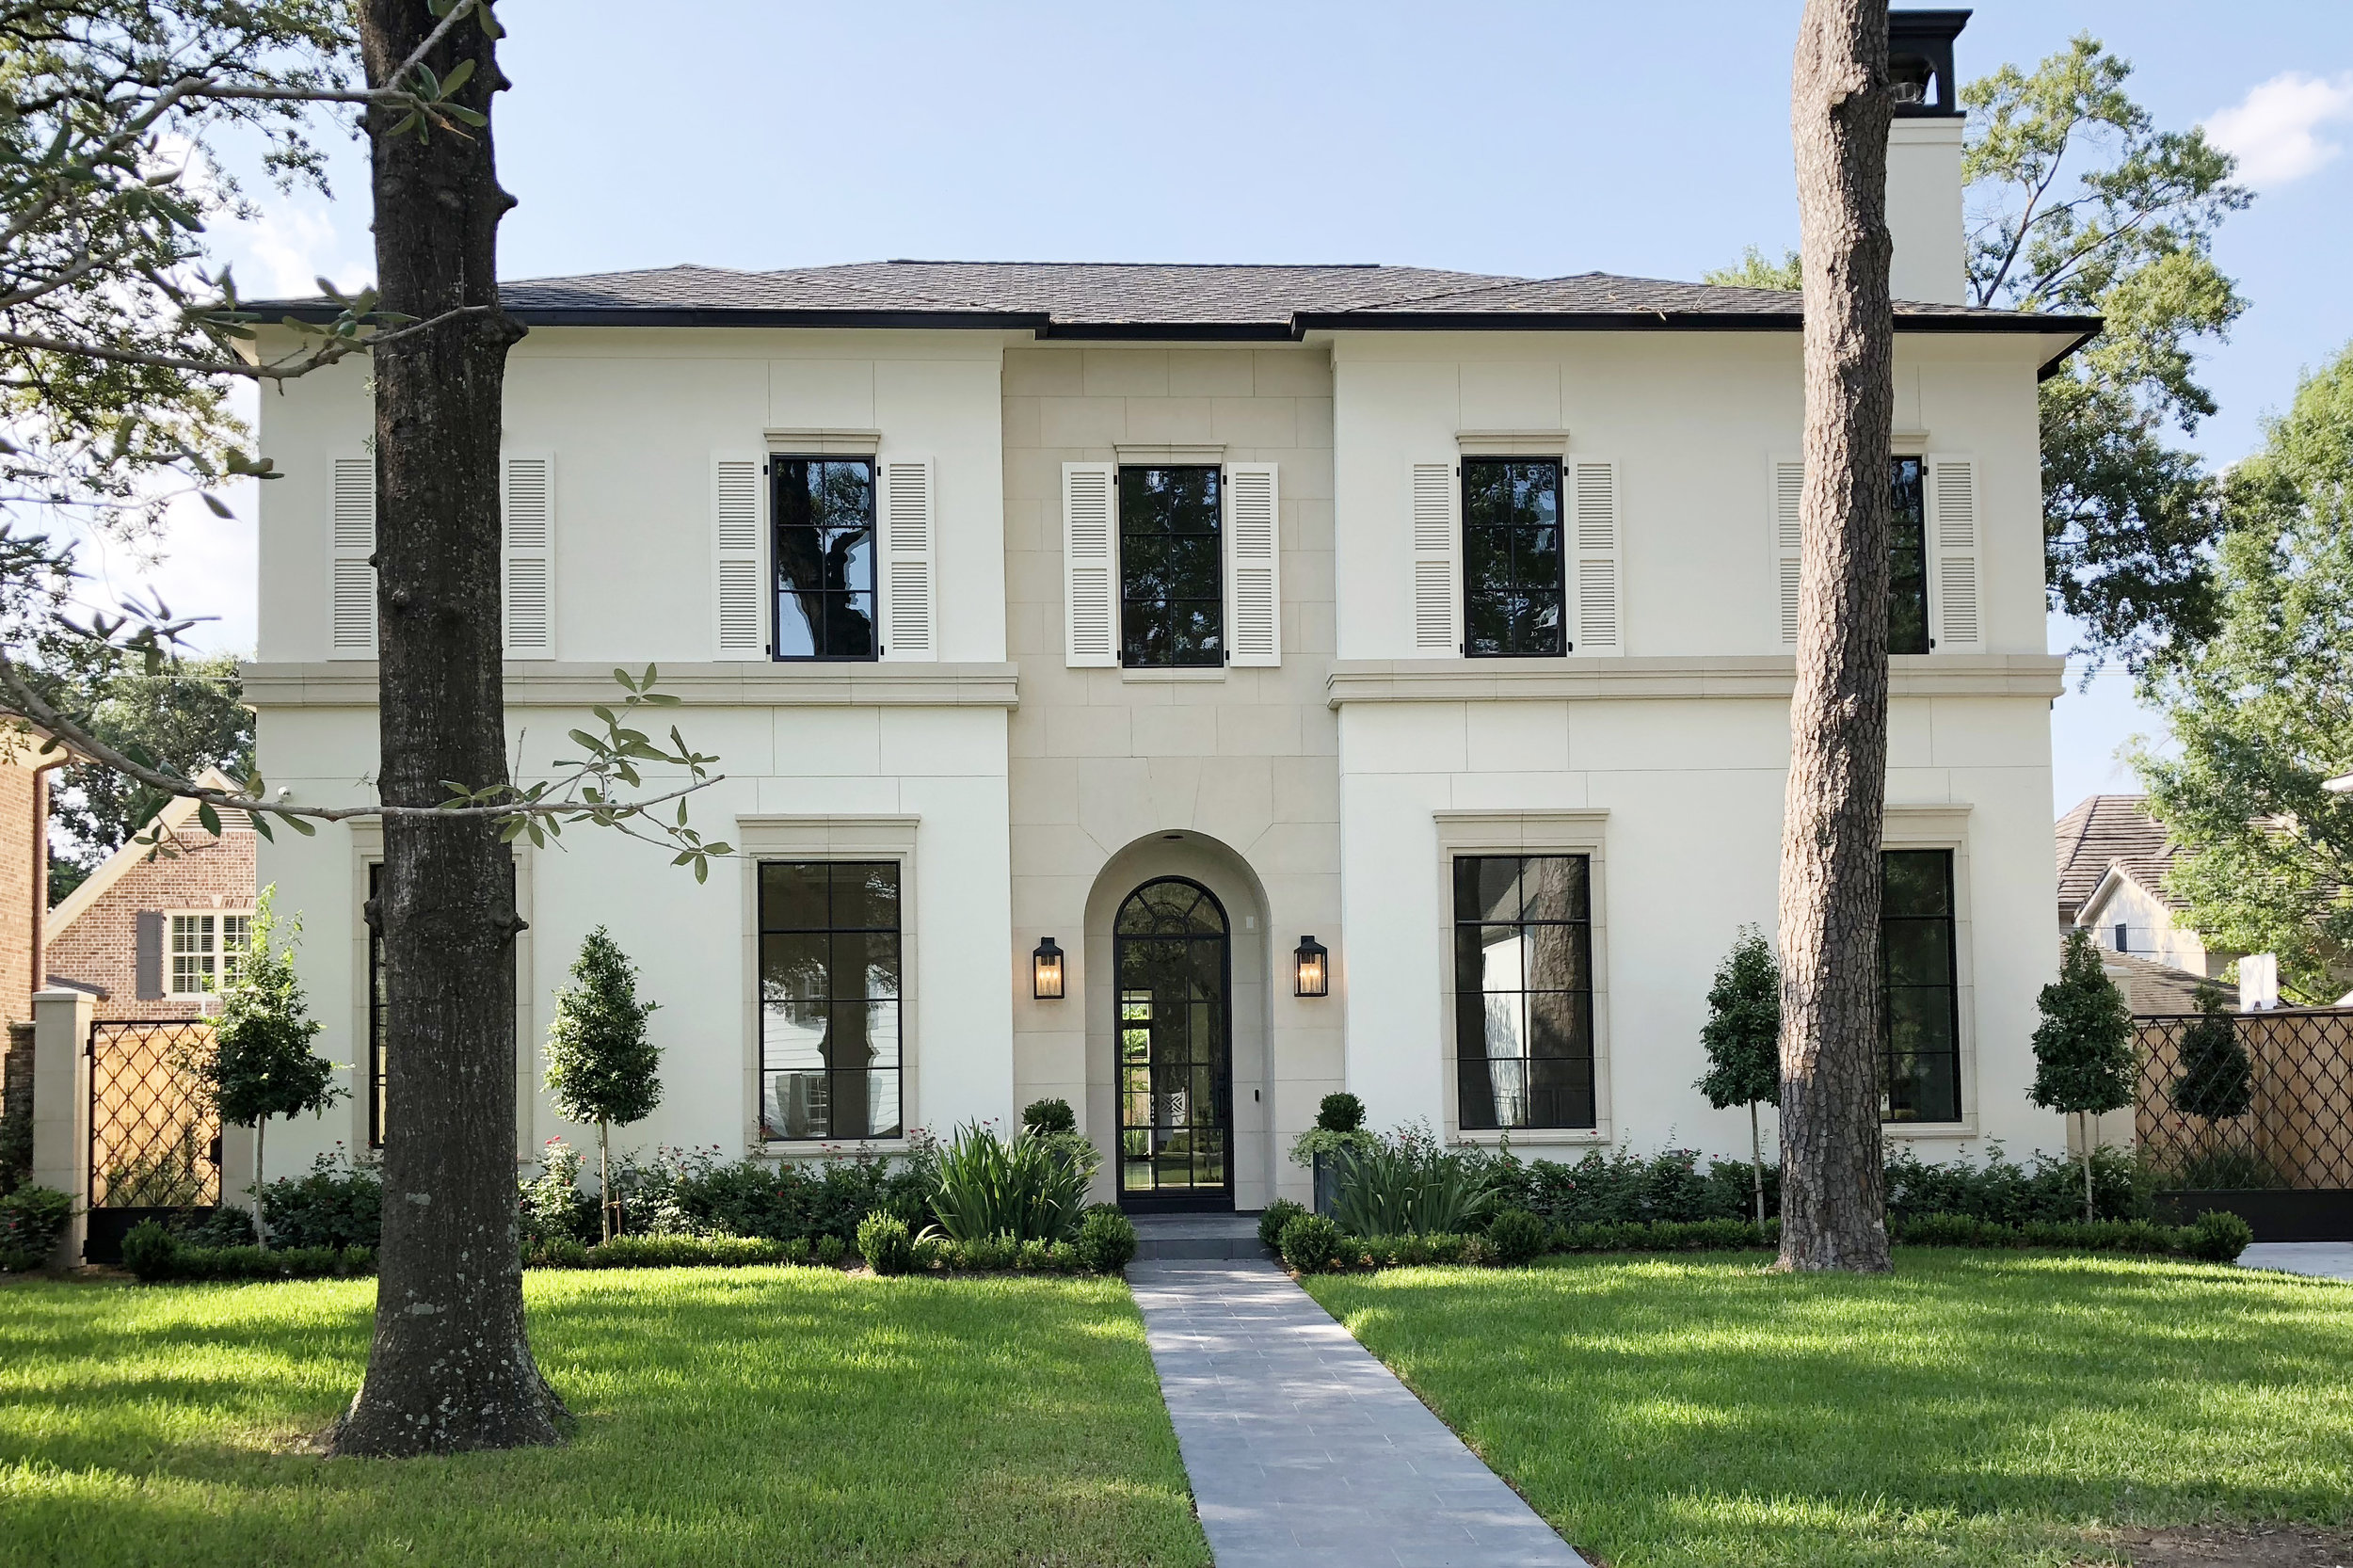 Exterior of home in River Oaks Houston Texas designed by Berlin based interior designer Jamie House